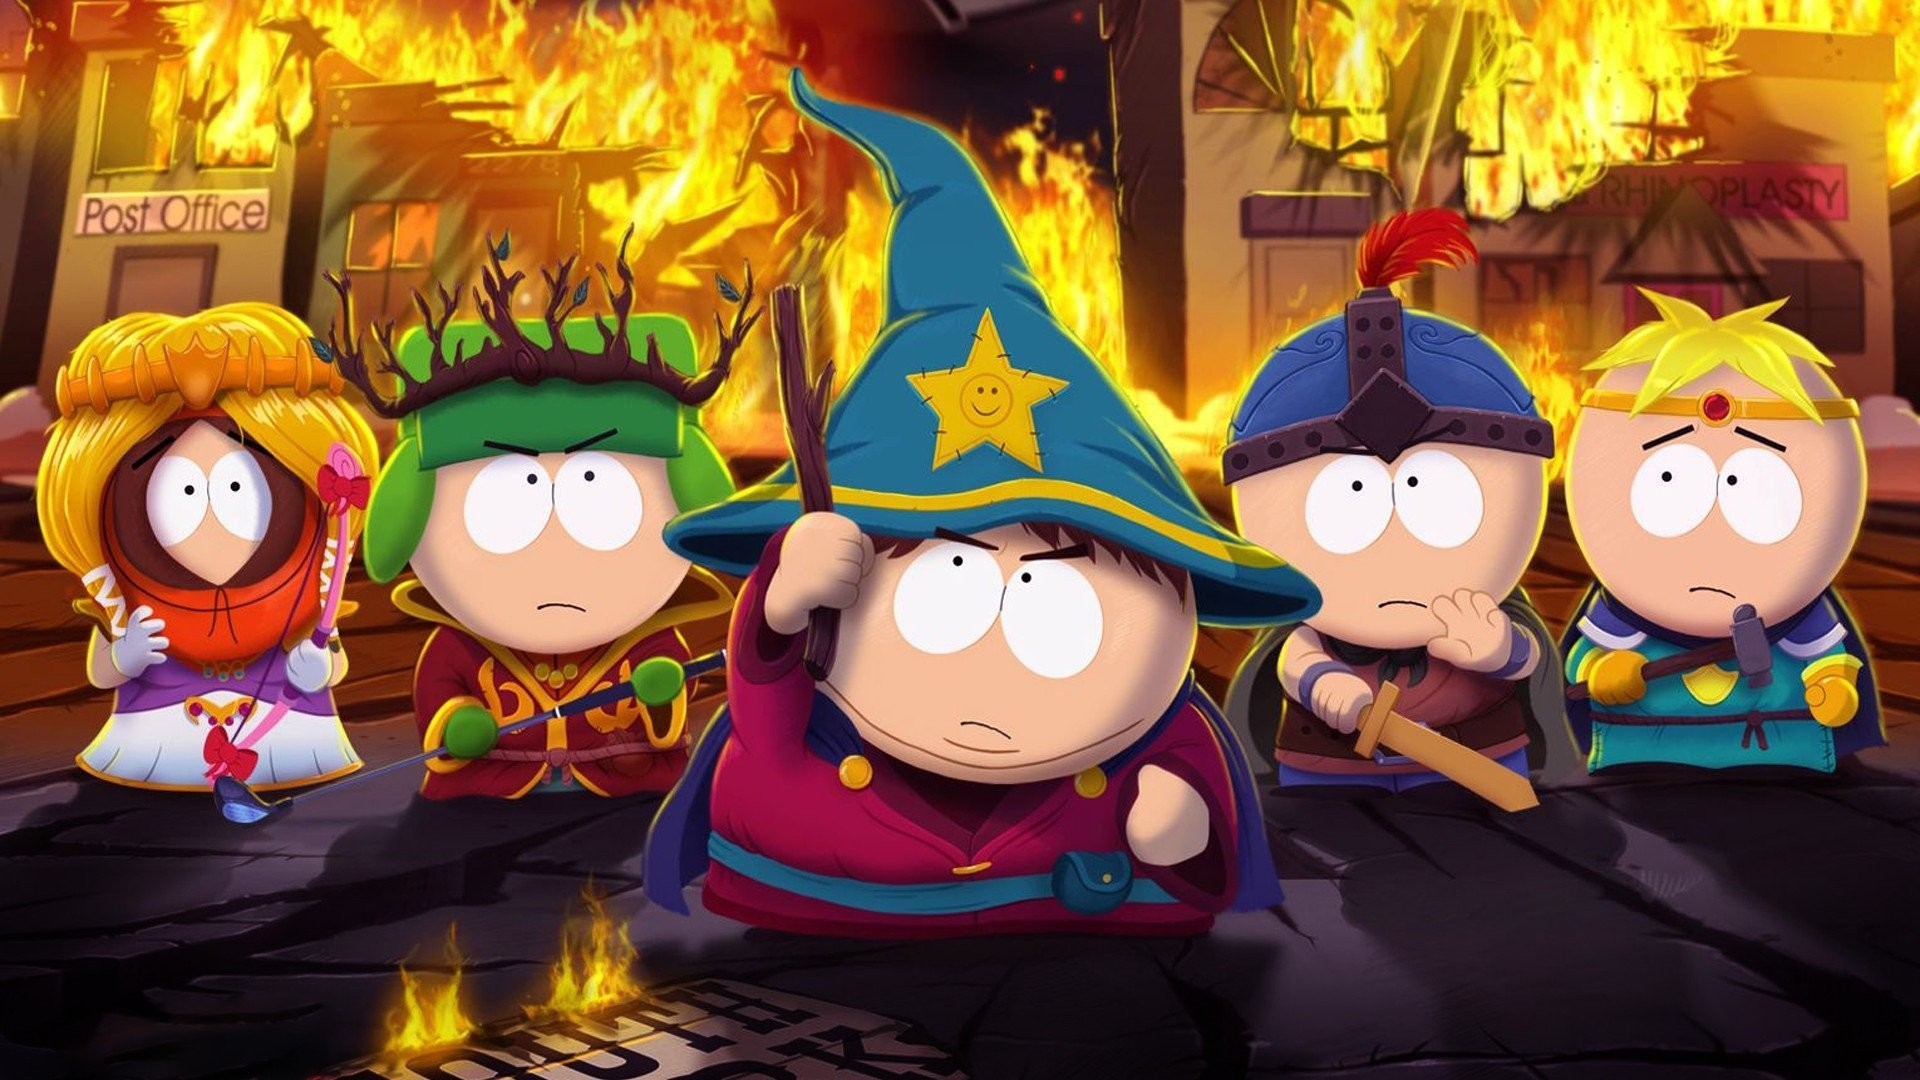 Great Wallpaper Mac South Park - 727086-full-size-south-park-wallpapers-1920x1080  Picture_356970.jpg